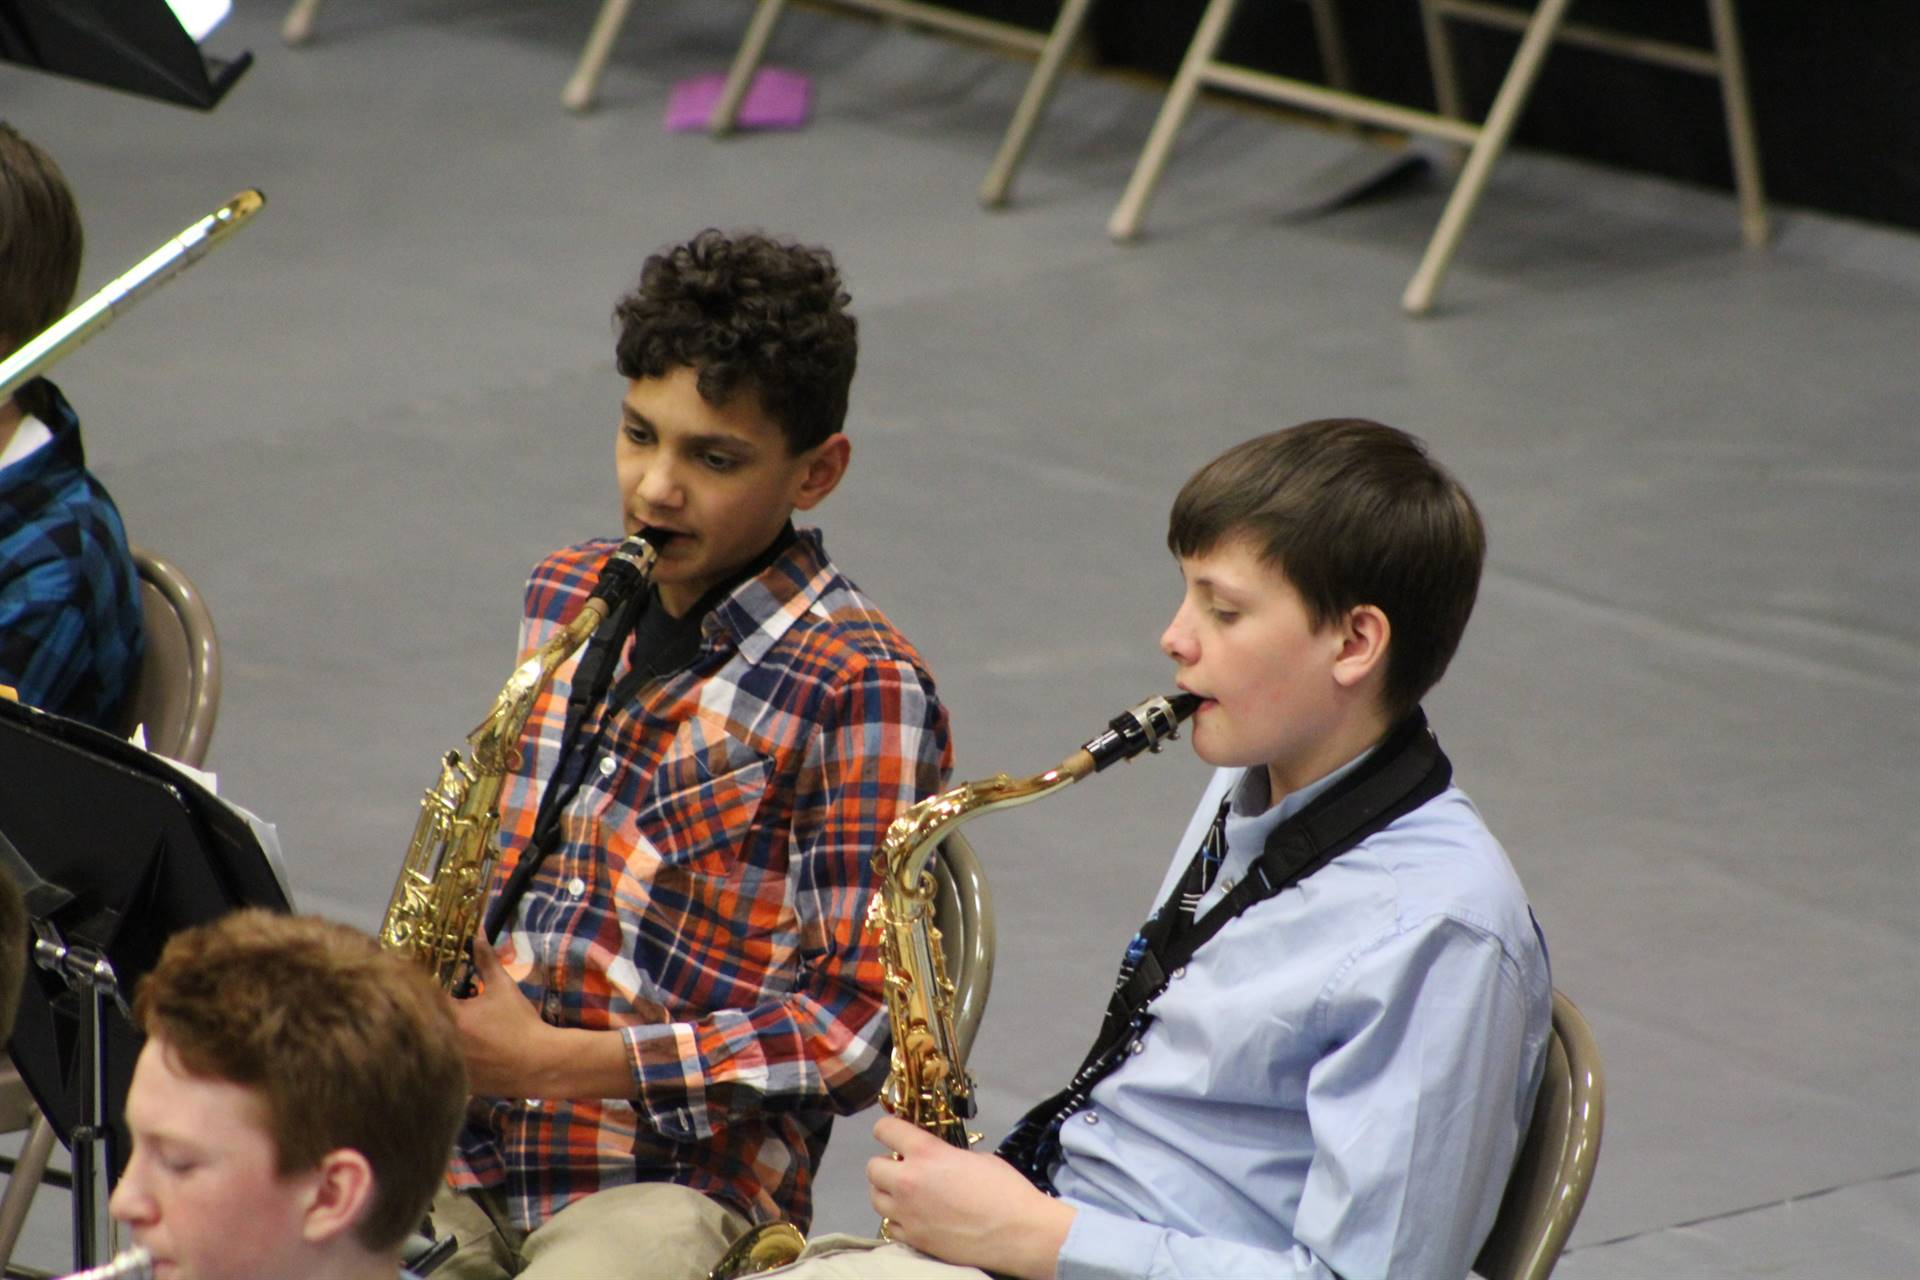 Two boys performing during a band concert